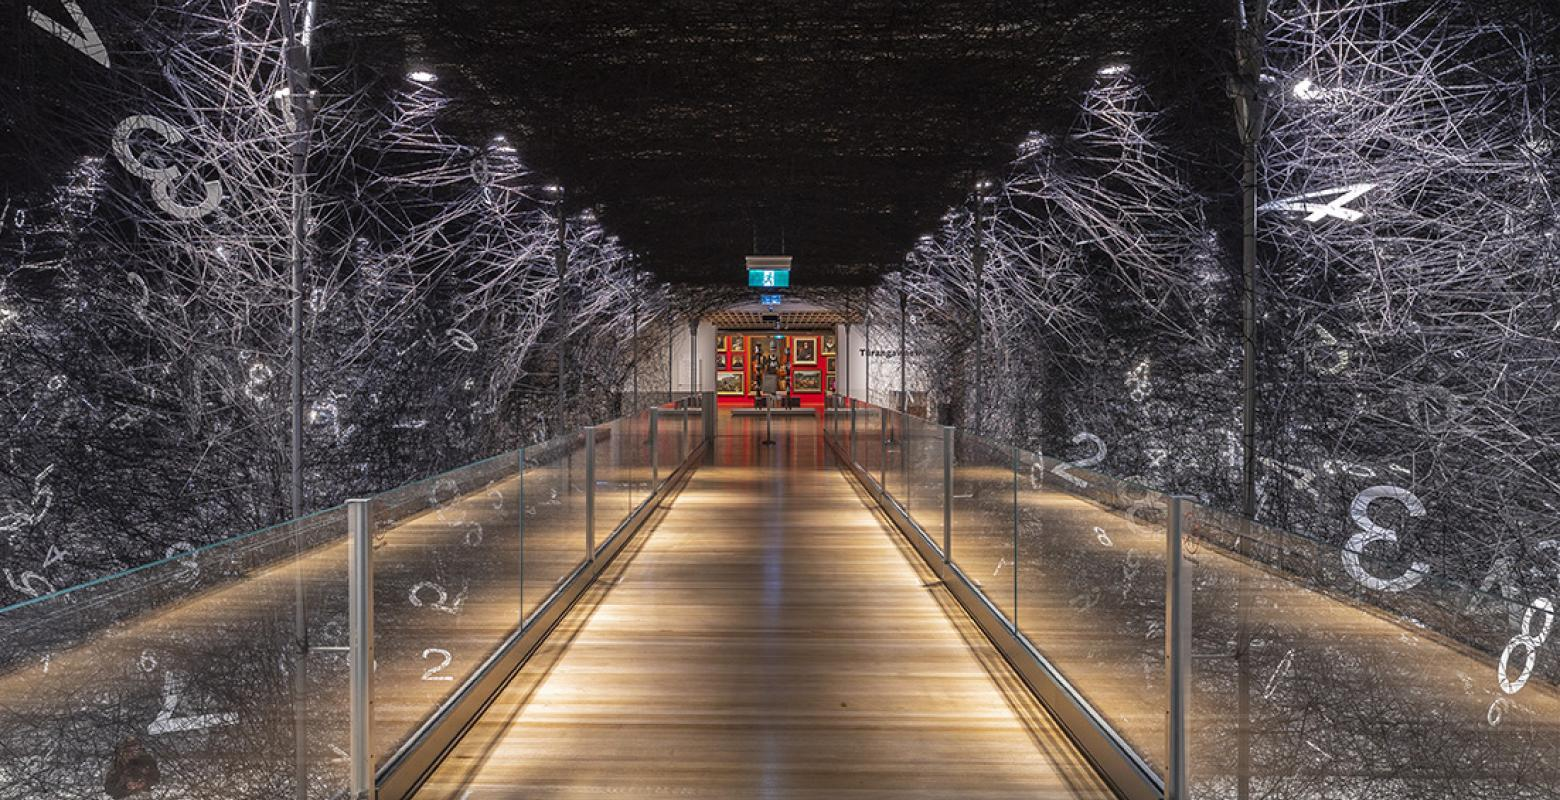 Black wool in a web stretched across a museum gallery floor, with a wooden bridge running through the middle of it. In the distance is a red wall with paintings on it.